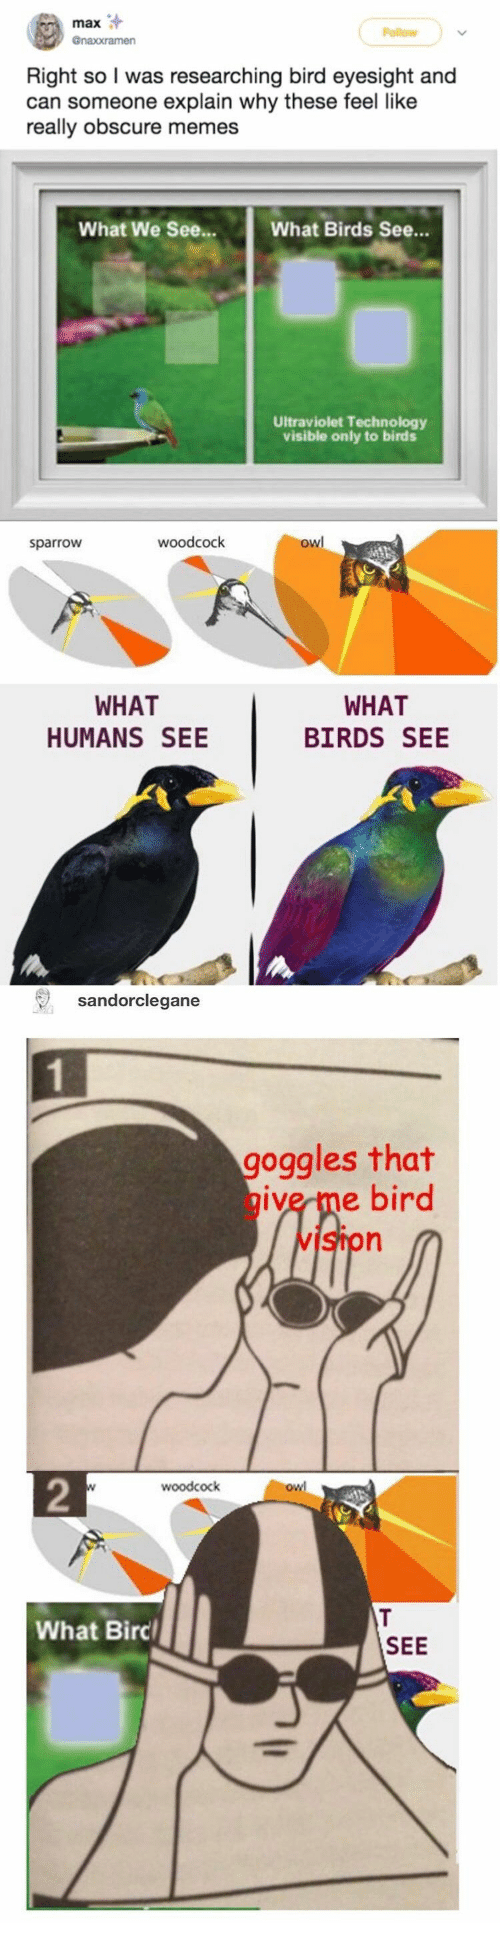 Memes, Birds, and Technology: max  Follow  @naxxramen  Right so I was researching bird eyesight and  can someone explain why these feel like  really obscure memes  What We See...  What Birds See...  Ultraviolet Technology  visible only to birds  owl  woodcock  sparrow  WHAT  WHAT  HUMANS SEE  BIRDS SEE  sandorclegane  goggles that  give me bird  vIston  2  woodcock  owl  T  What Birc  SEE